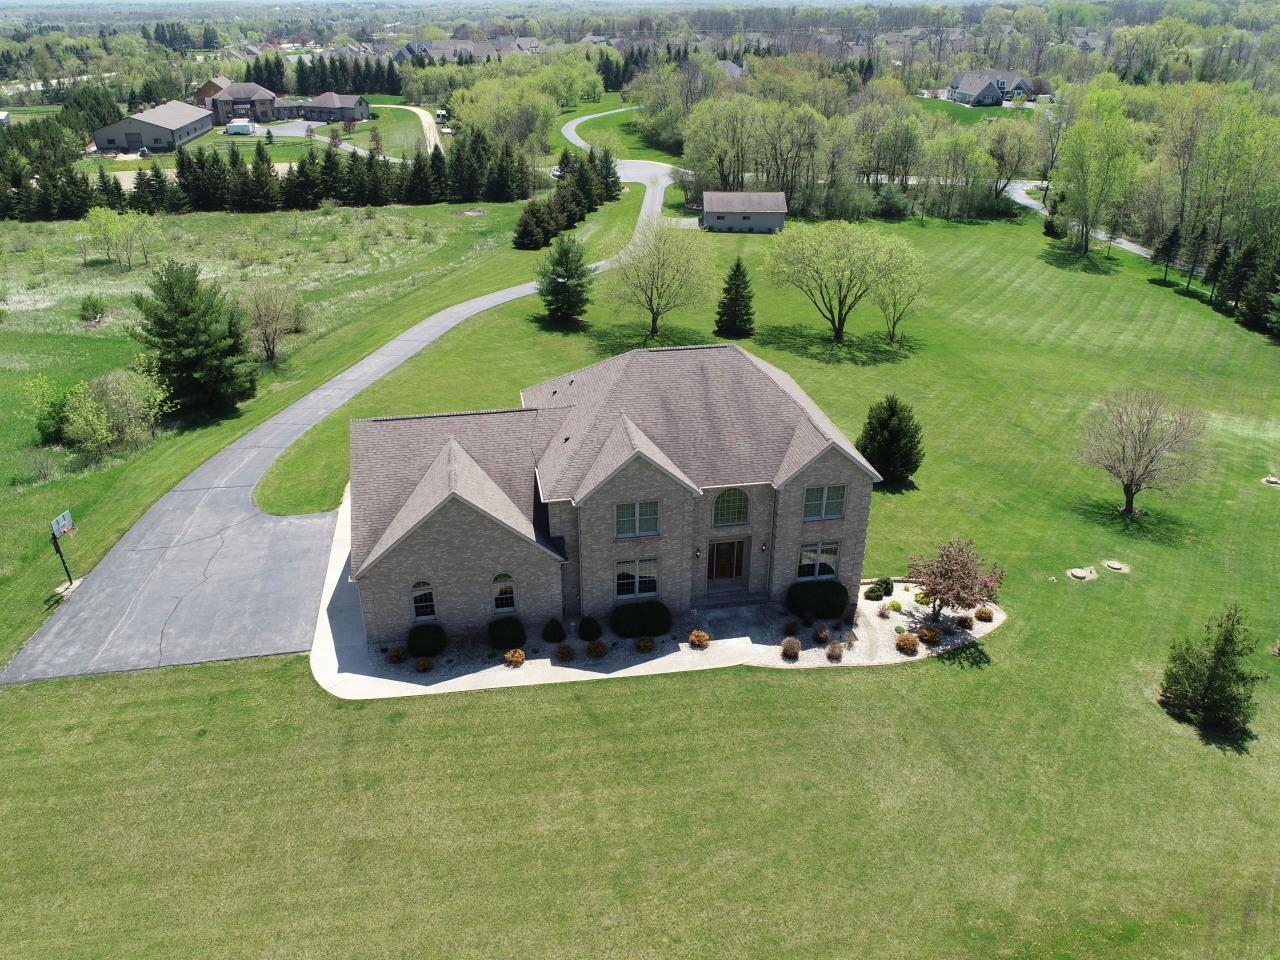 One of the highest points in Ozaukee County!! This meticulously maintained 5 BR home on 5 acres in peaceful Miller's Hill offers stunning views of the countryside & Milwaukee skyline. Sleek, spacious interior with abundant windows & soaring ceilings. White cabinetry and black granite countertops highlight the dynamite kitchen. The master suite is complete with a walk-in closet, luxurious bath & serene sitting area with city views. Relax in the finished lower level, or outside on the large deck & patio. Storage abounds in both the heated 3-plus car garage & the large heated detached garage.